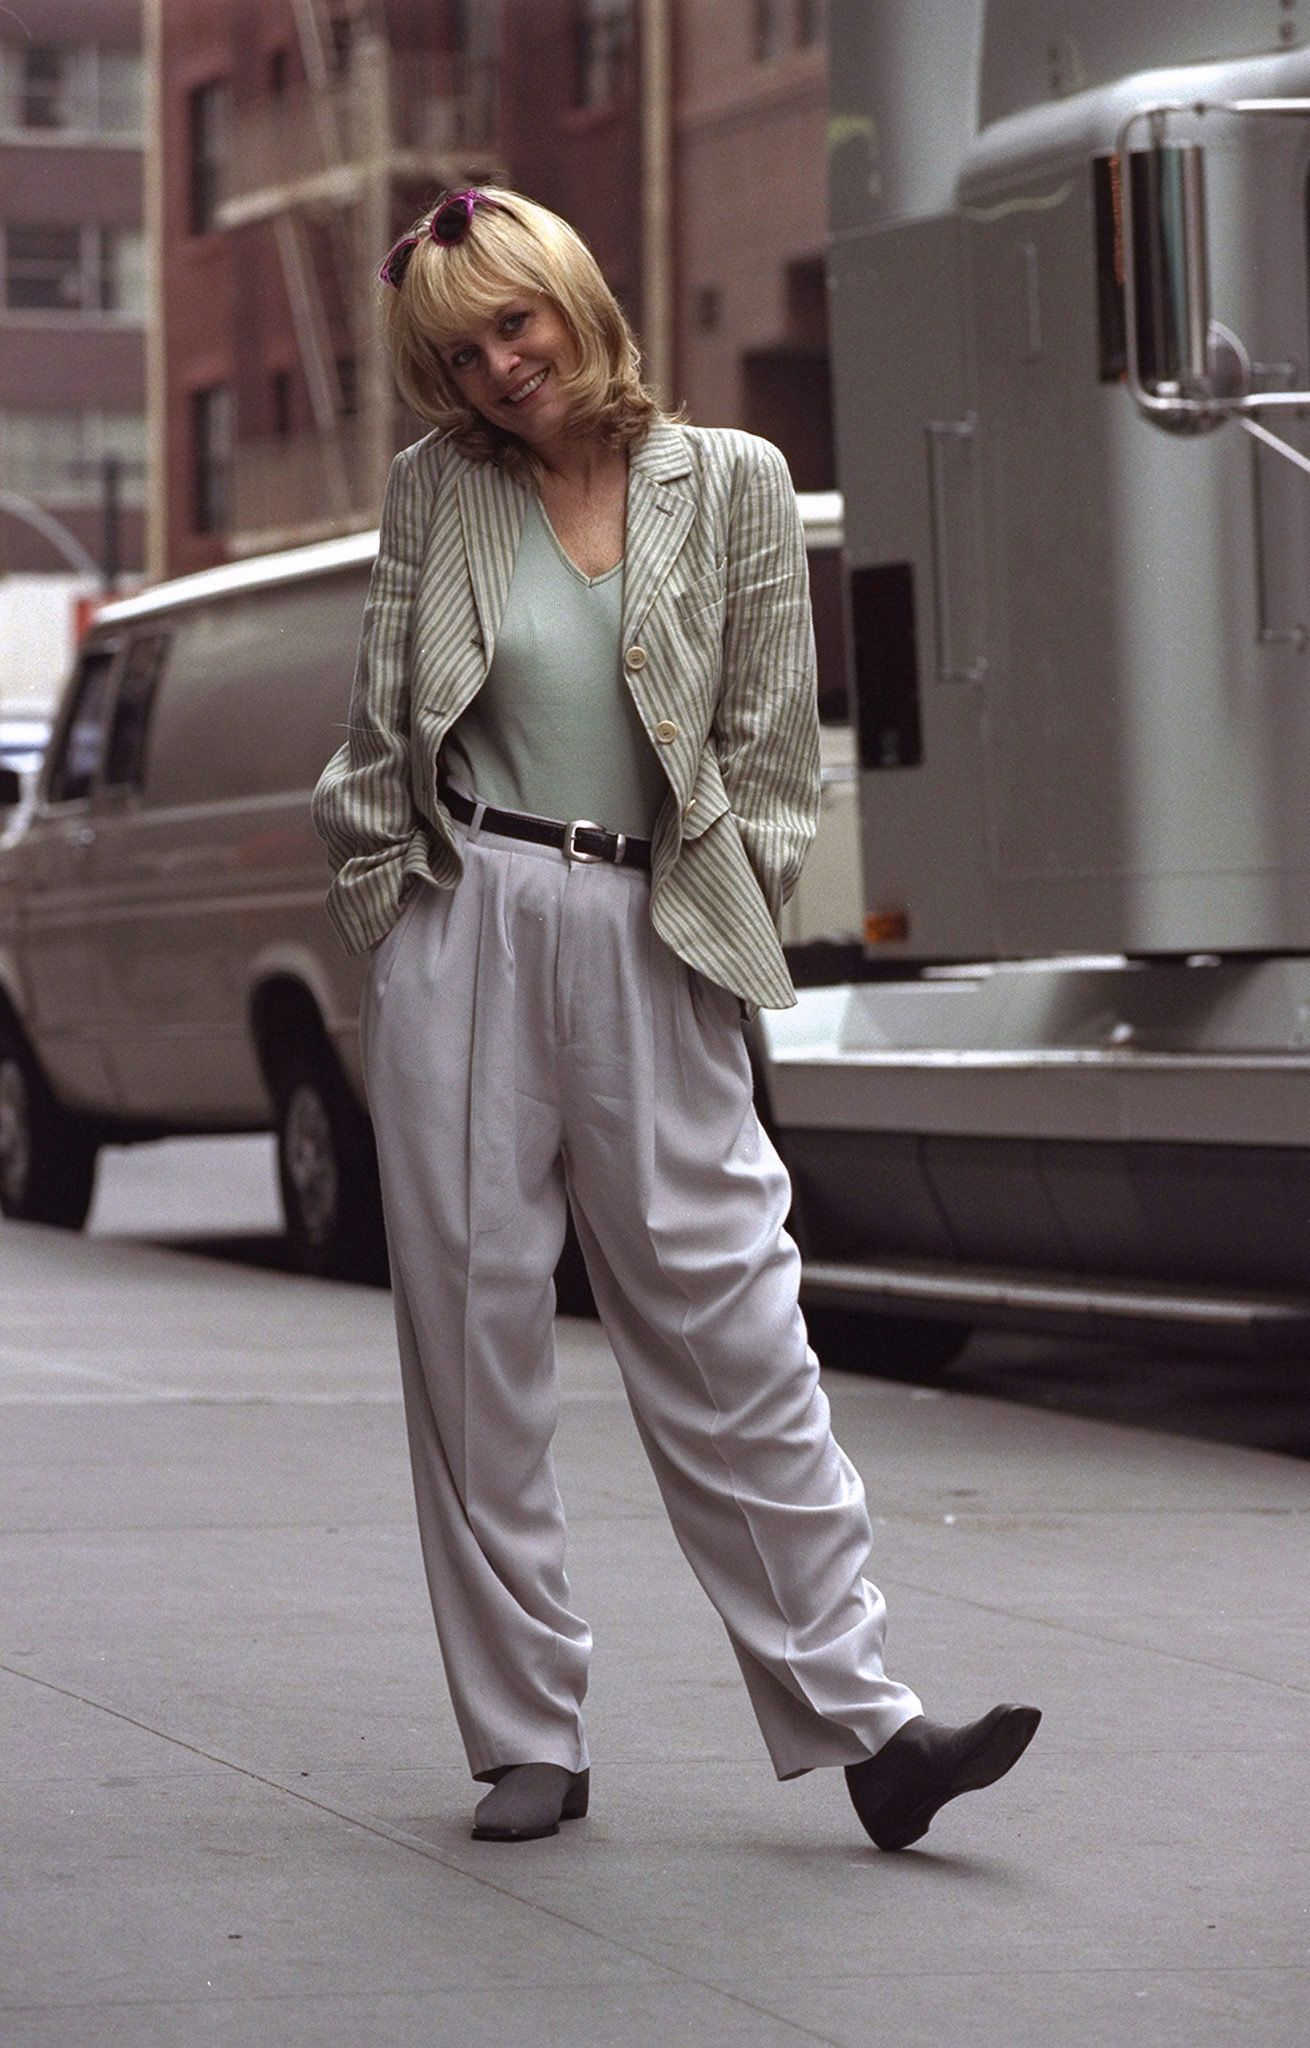 Twiggy posing on the sidewalk in a relaxed outfit.